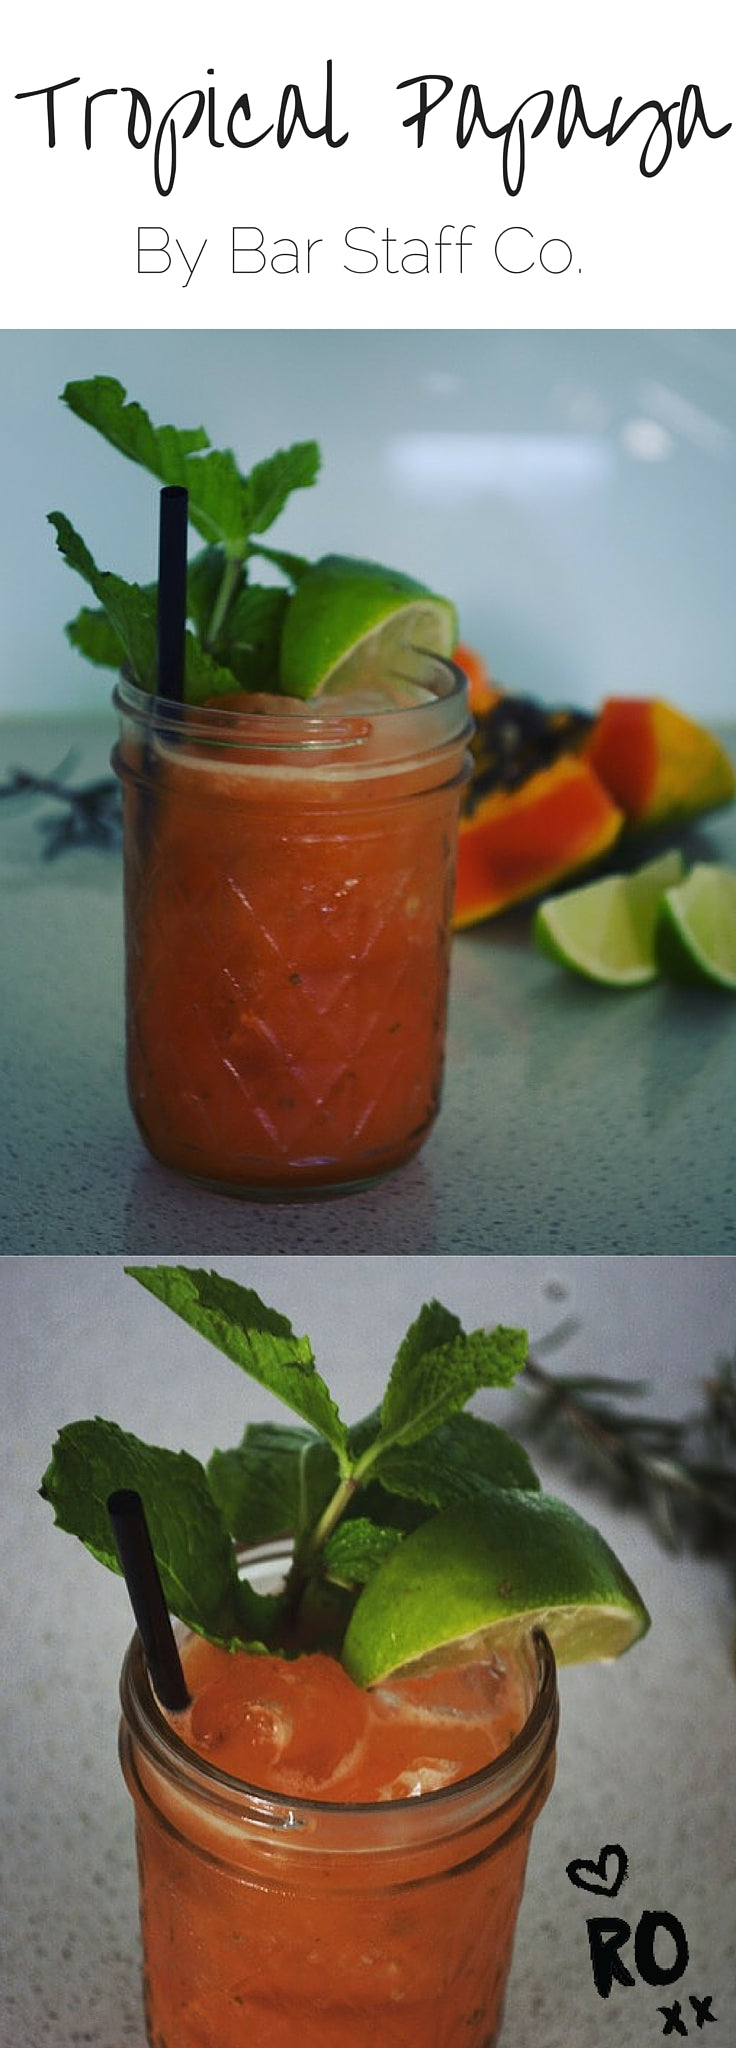 Tropical Papaya Cocktail Recipe